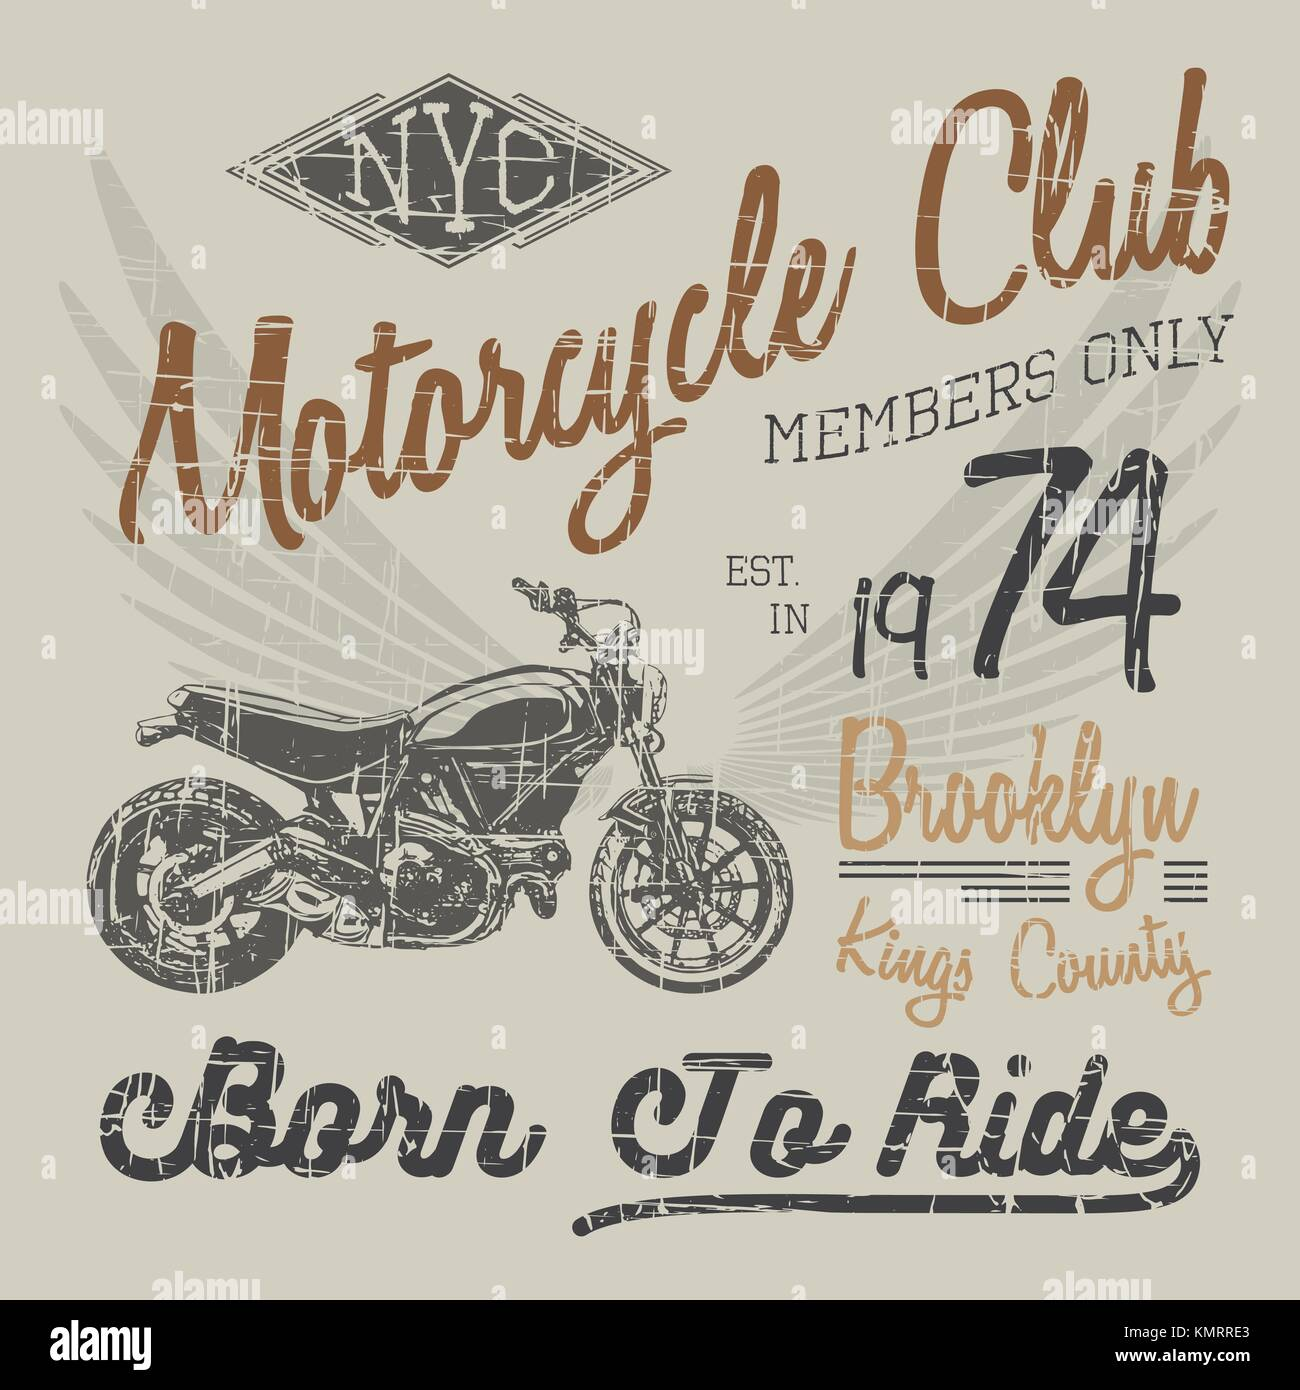 568809ed8 T-shirt typography design, motorcycle vector, NYC printing graphics,  typographic vector illustration